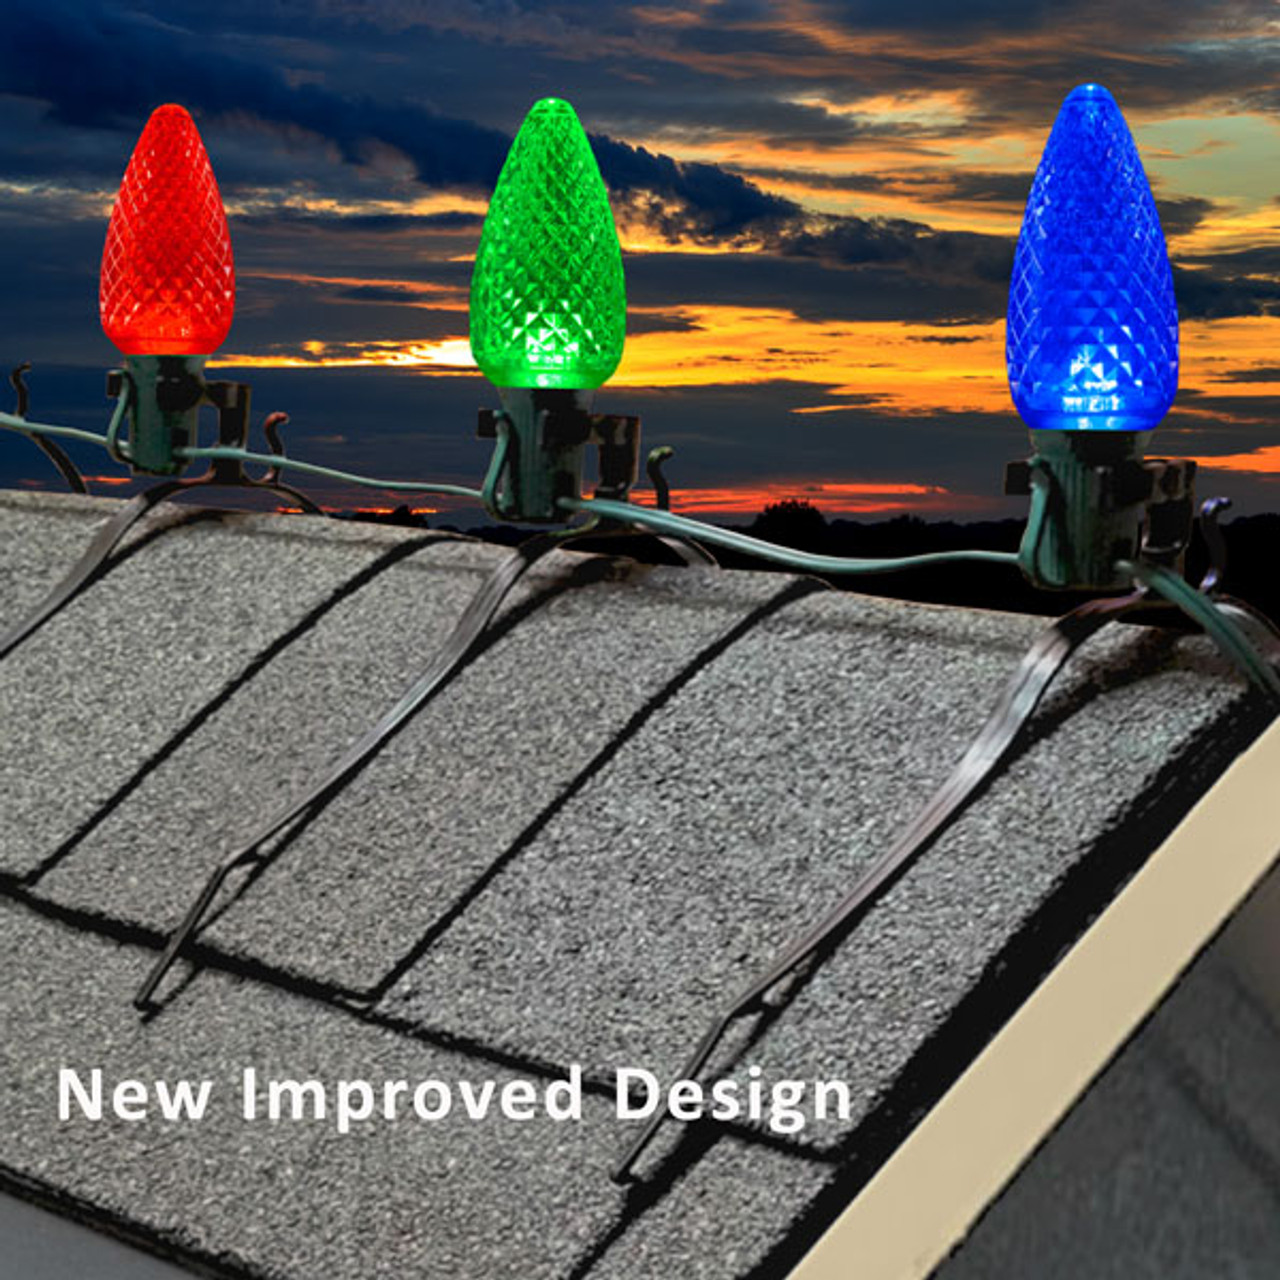 Clip Roof Top Ridge Line Mounting Clip For C7 C9 Bulbs And Rope Light 5pc Bag